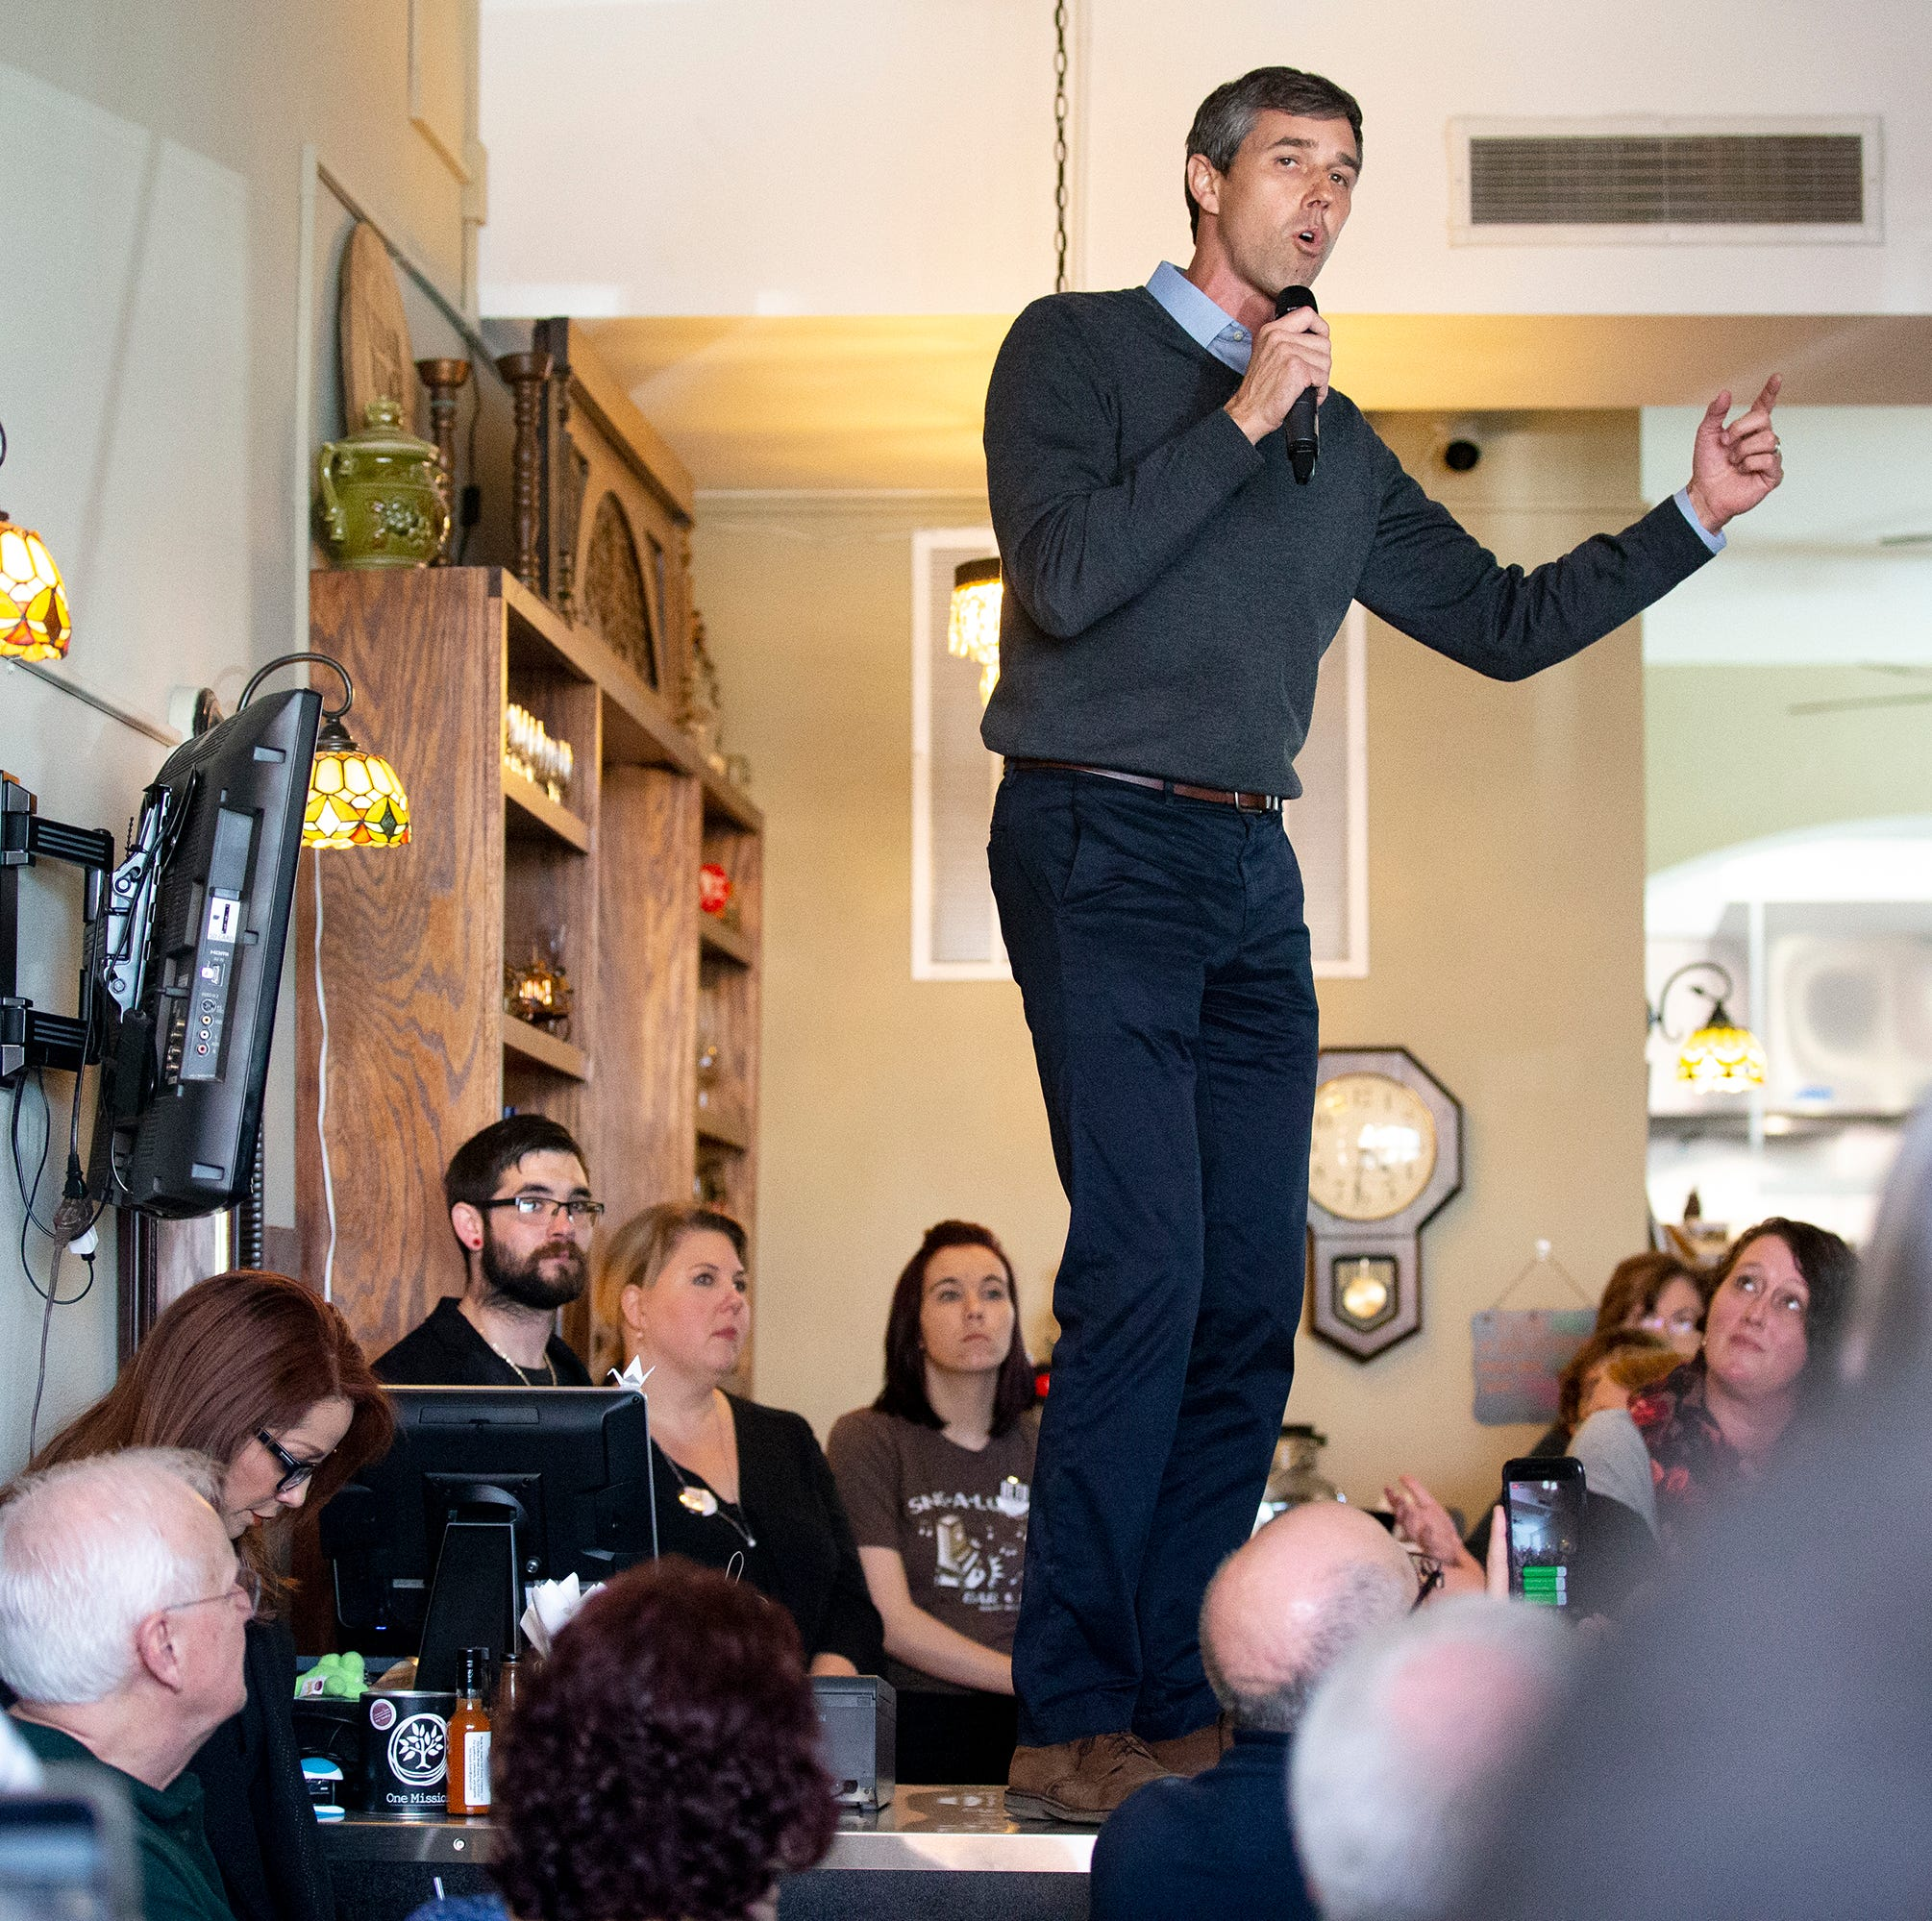 Beto O'Rourke after his first round of campaigning in Iowa: 'It's absolutely relentless'